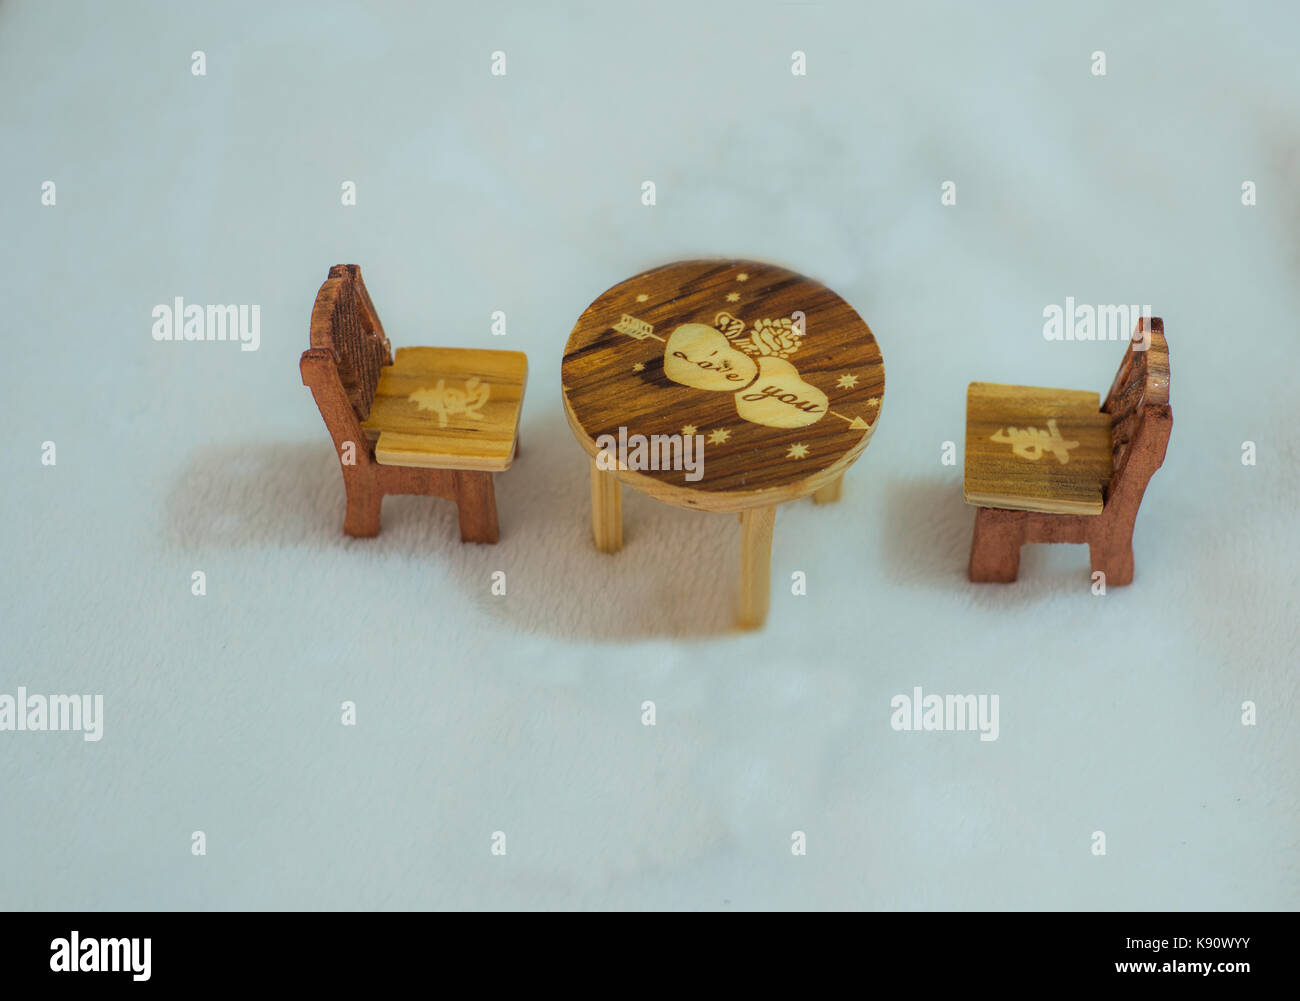 Wodden miniature table and chairs - Stock Image